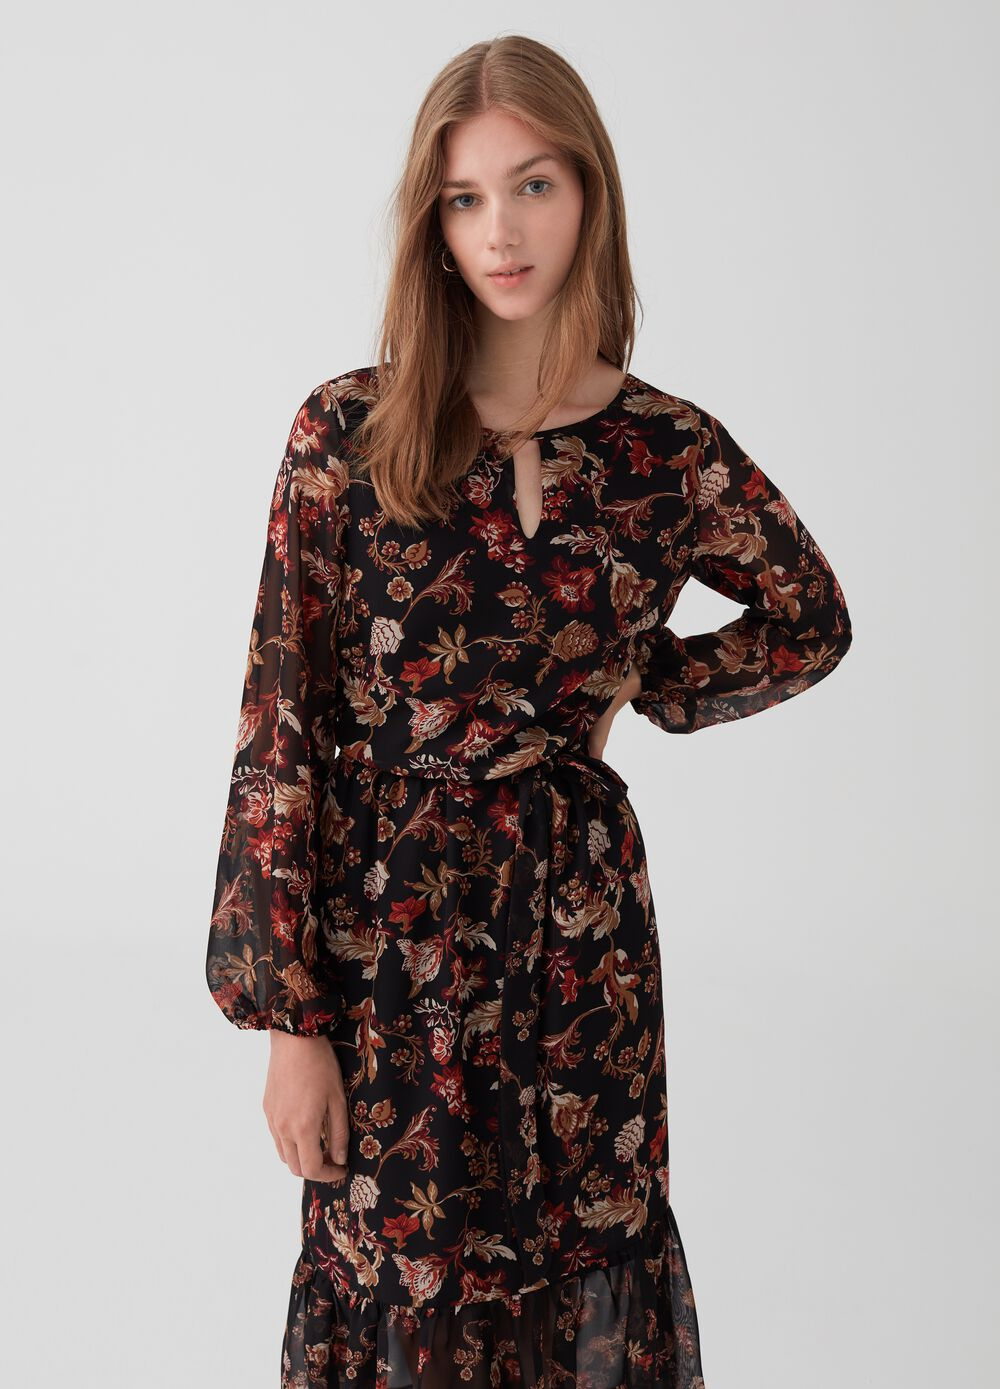 Floral dress with flounce